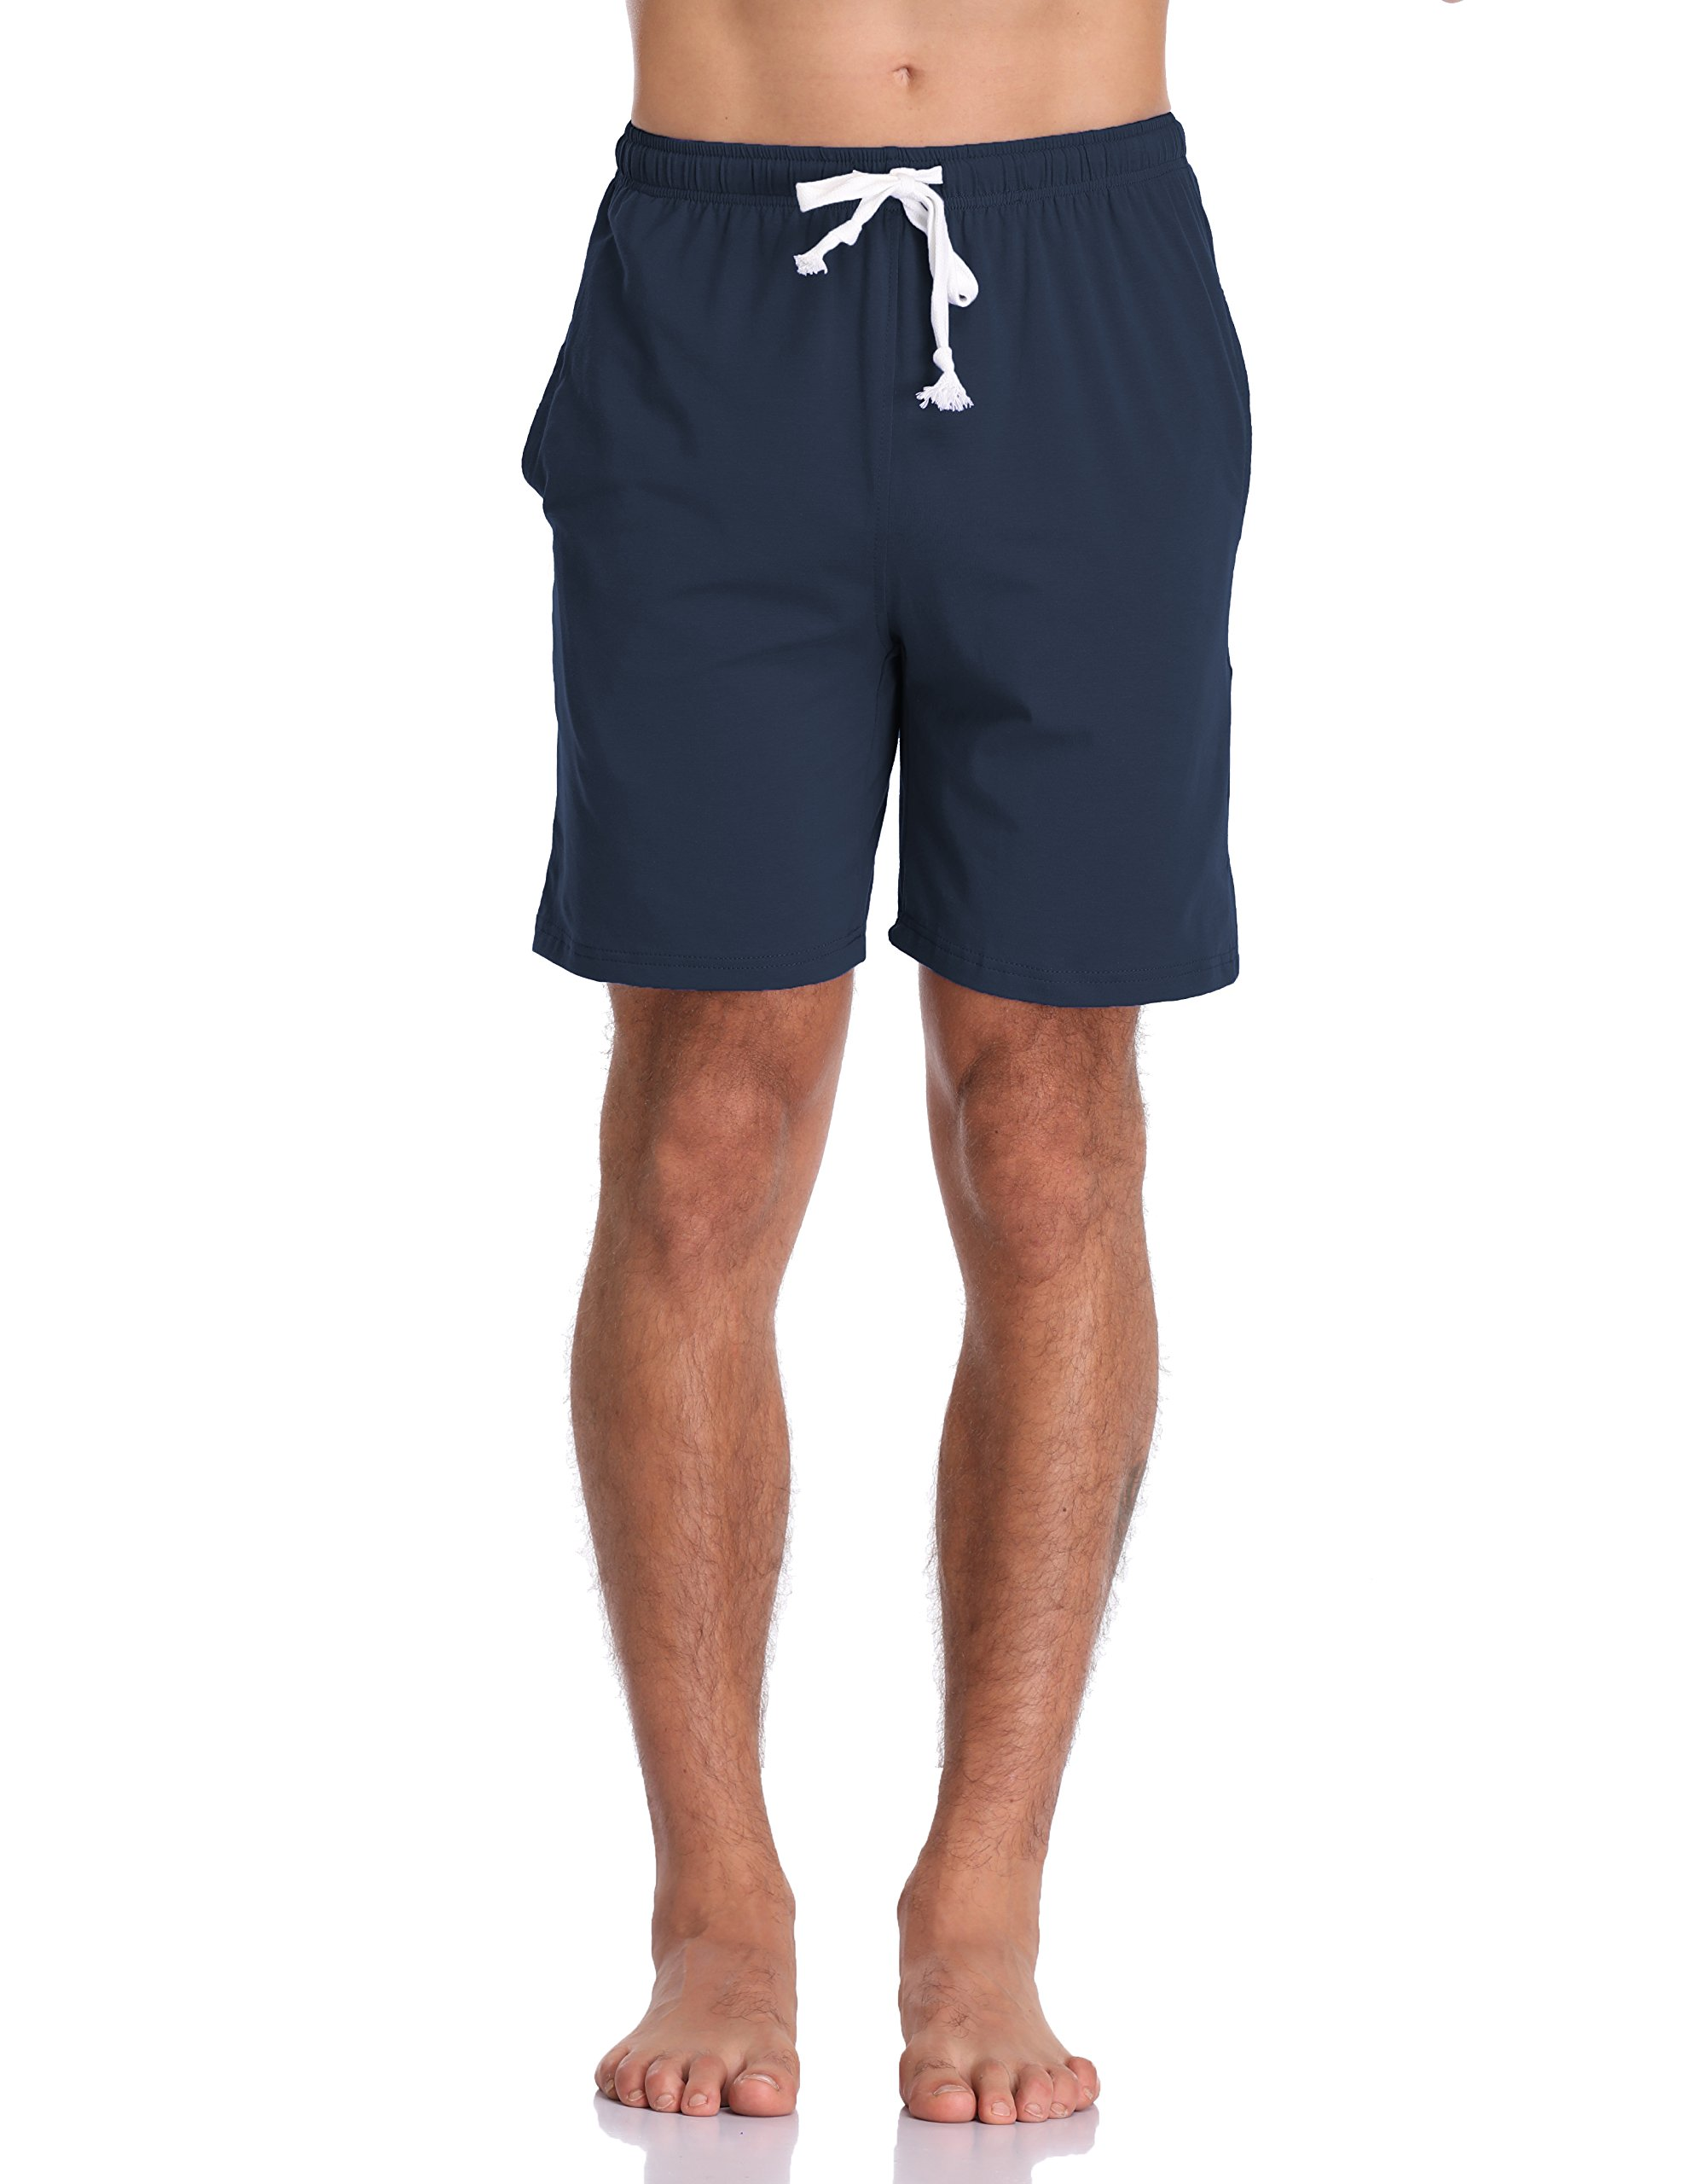 Luvrobes Men's Cotton Knit Pajama Lounge Shorts Sleep Bottoms (L, Navy) by Luvrobes